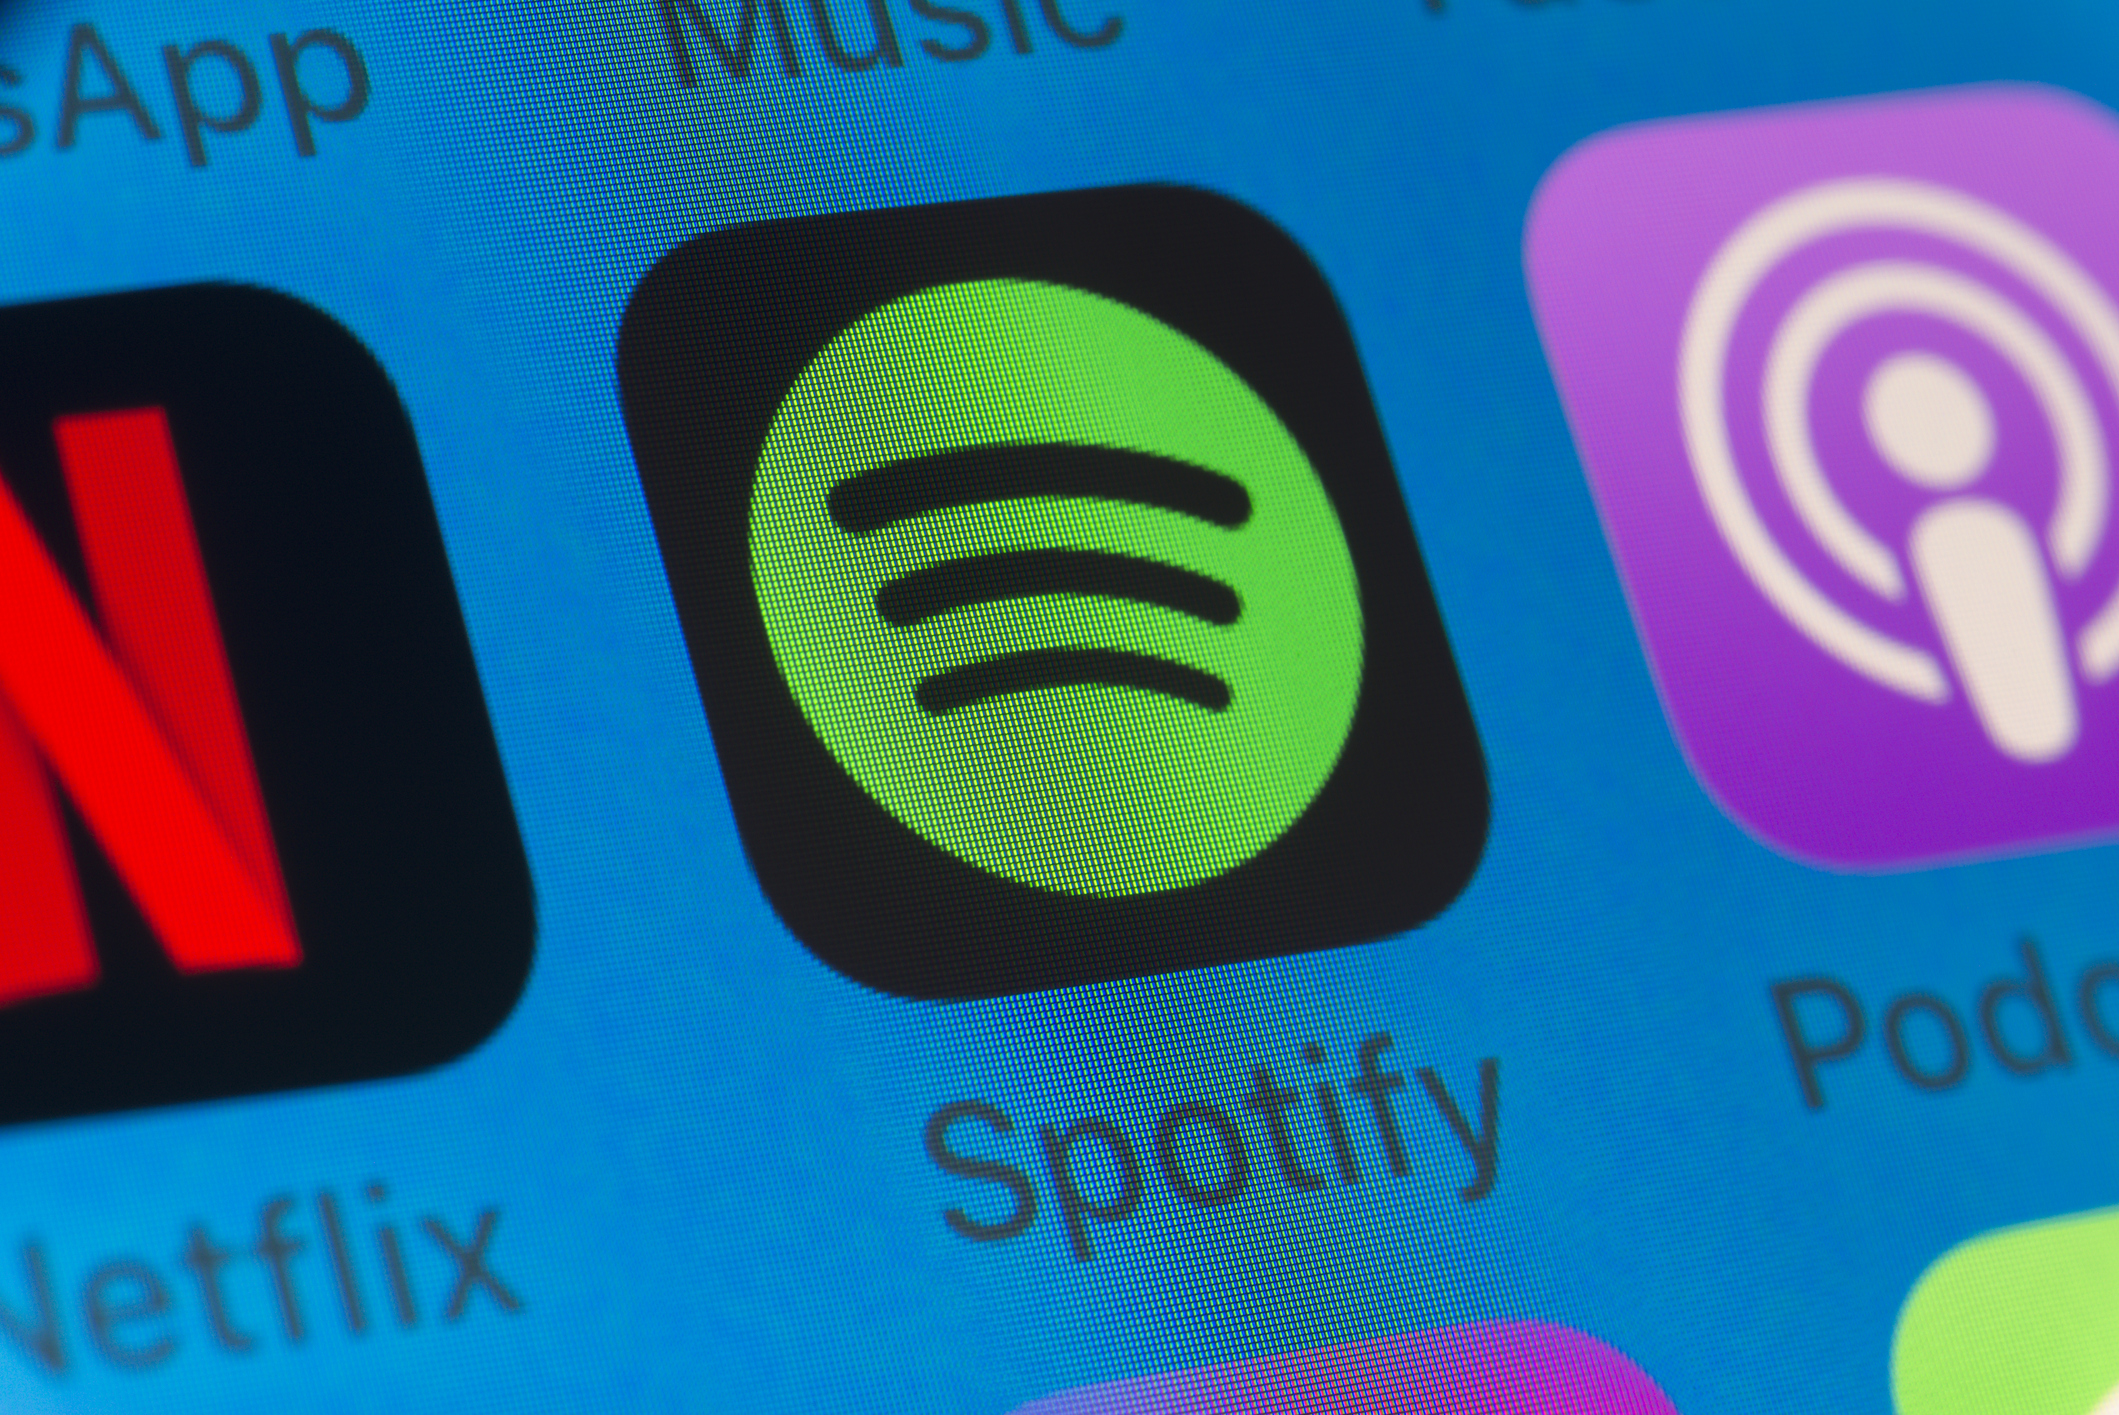 Spotify will now suspend or terminate accounts it finds are using ad